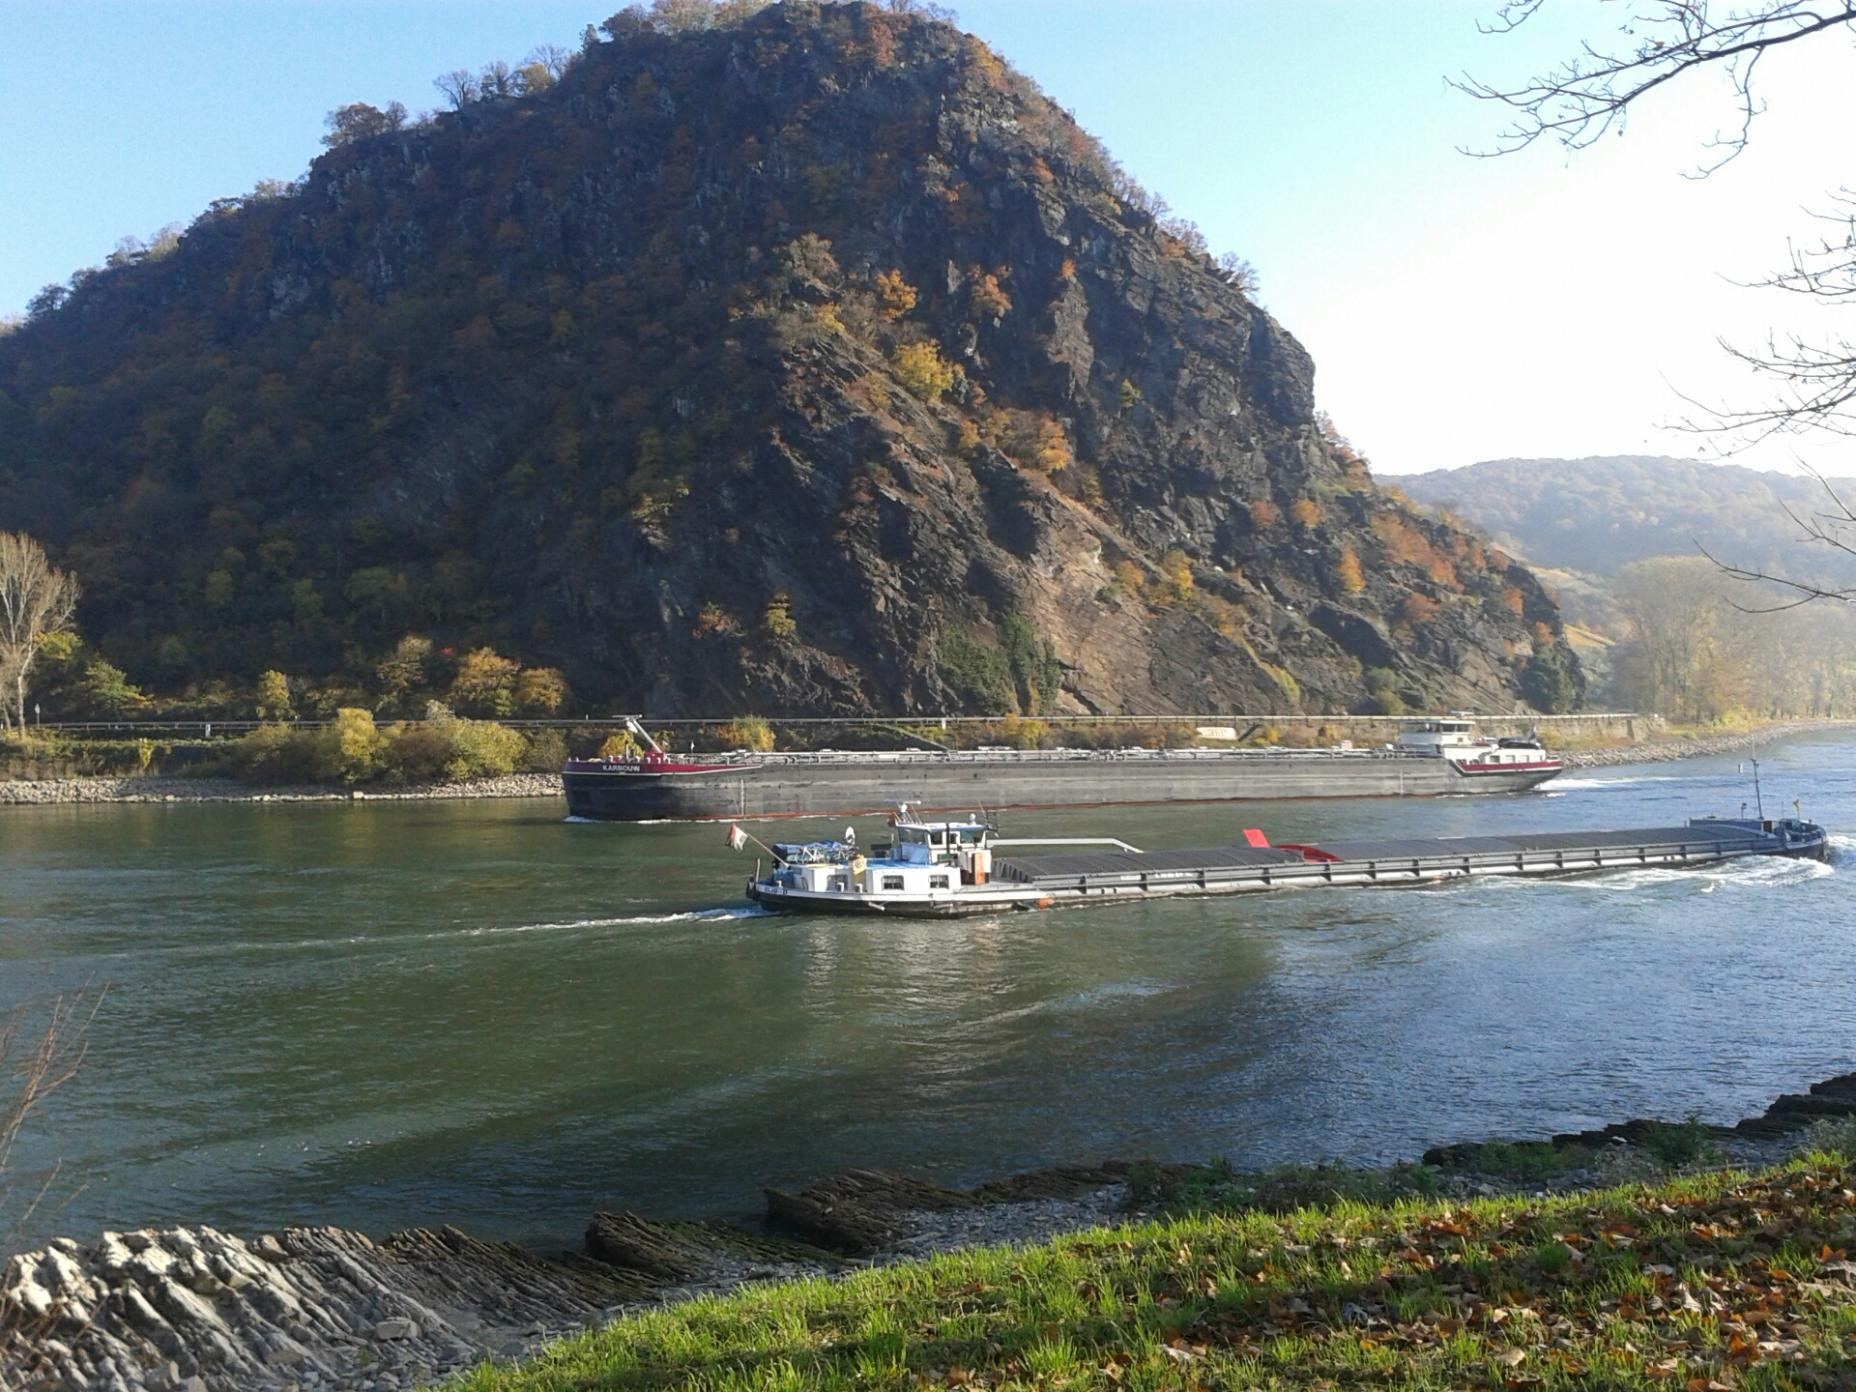 Photo: Ship encounter at the Loreley rock. Source: BfG